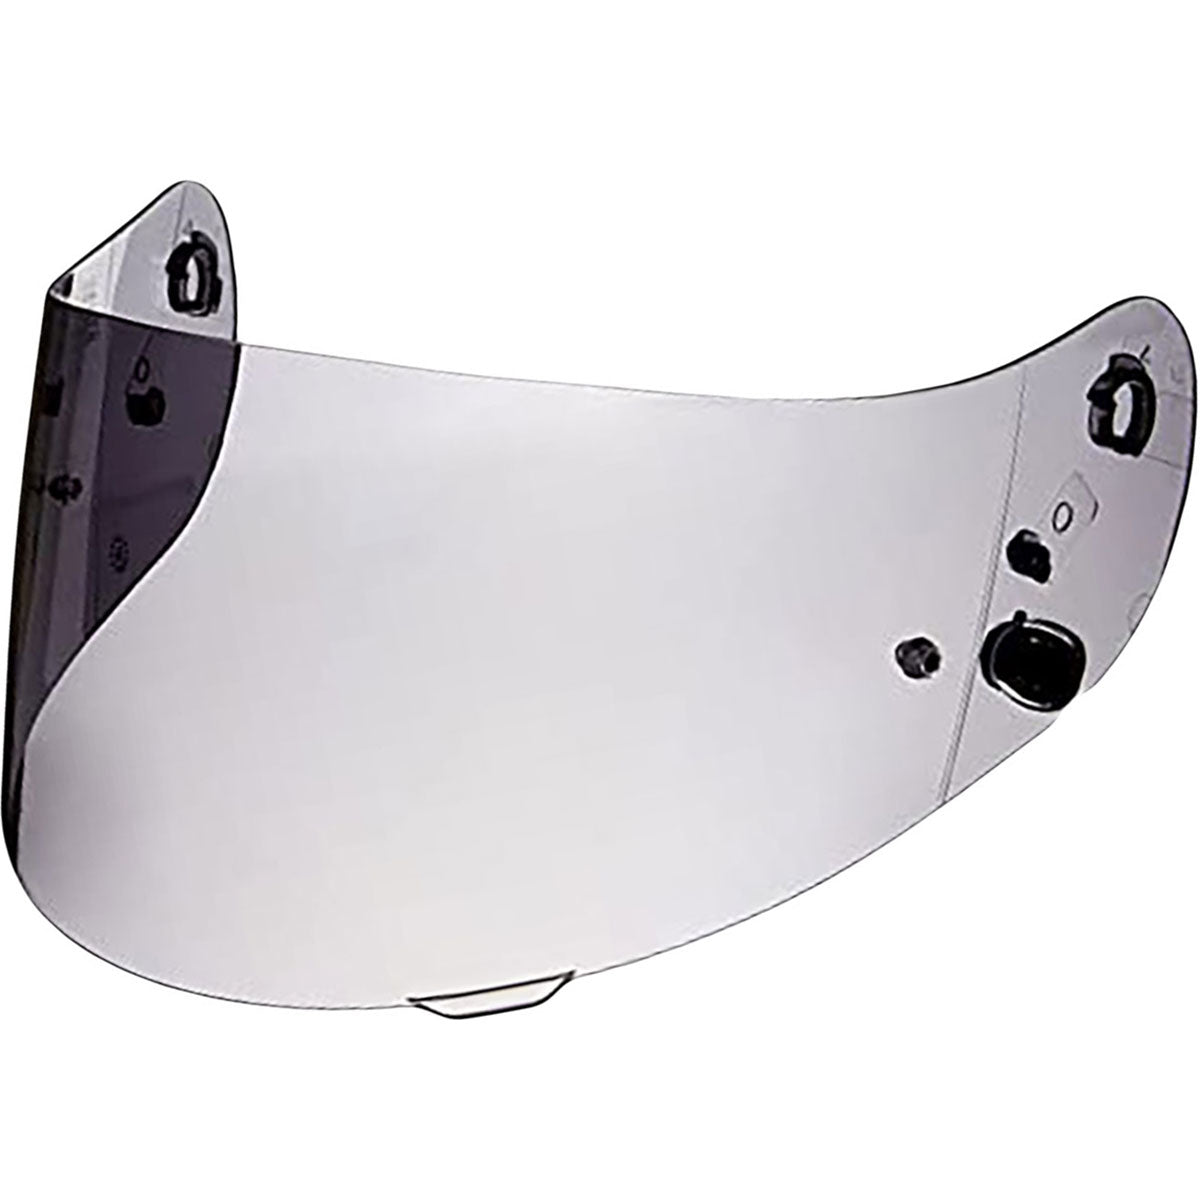 HJC HJ-09 Face Shield Helmet Accessories-19-002-1